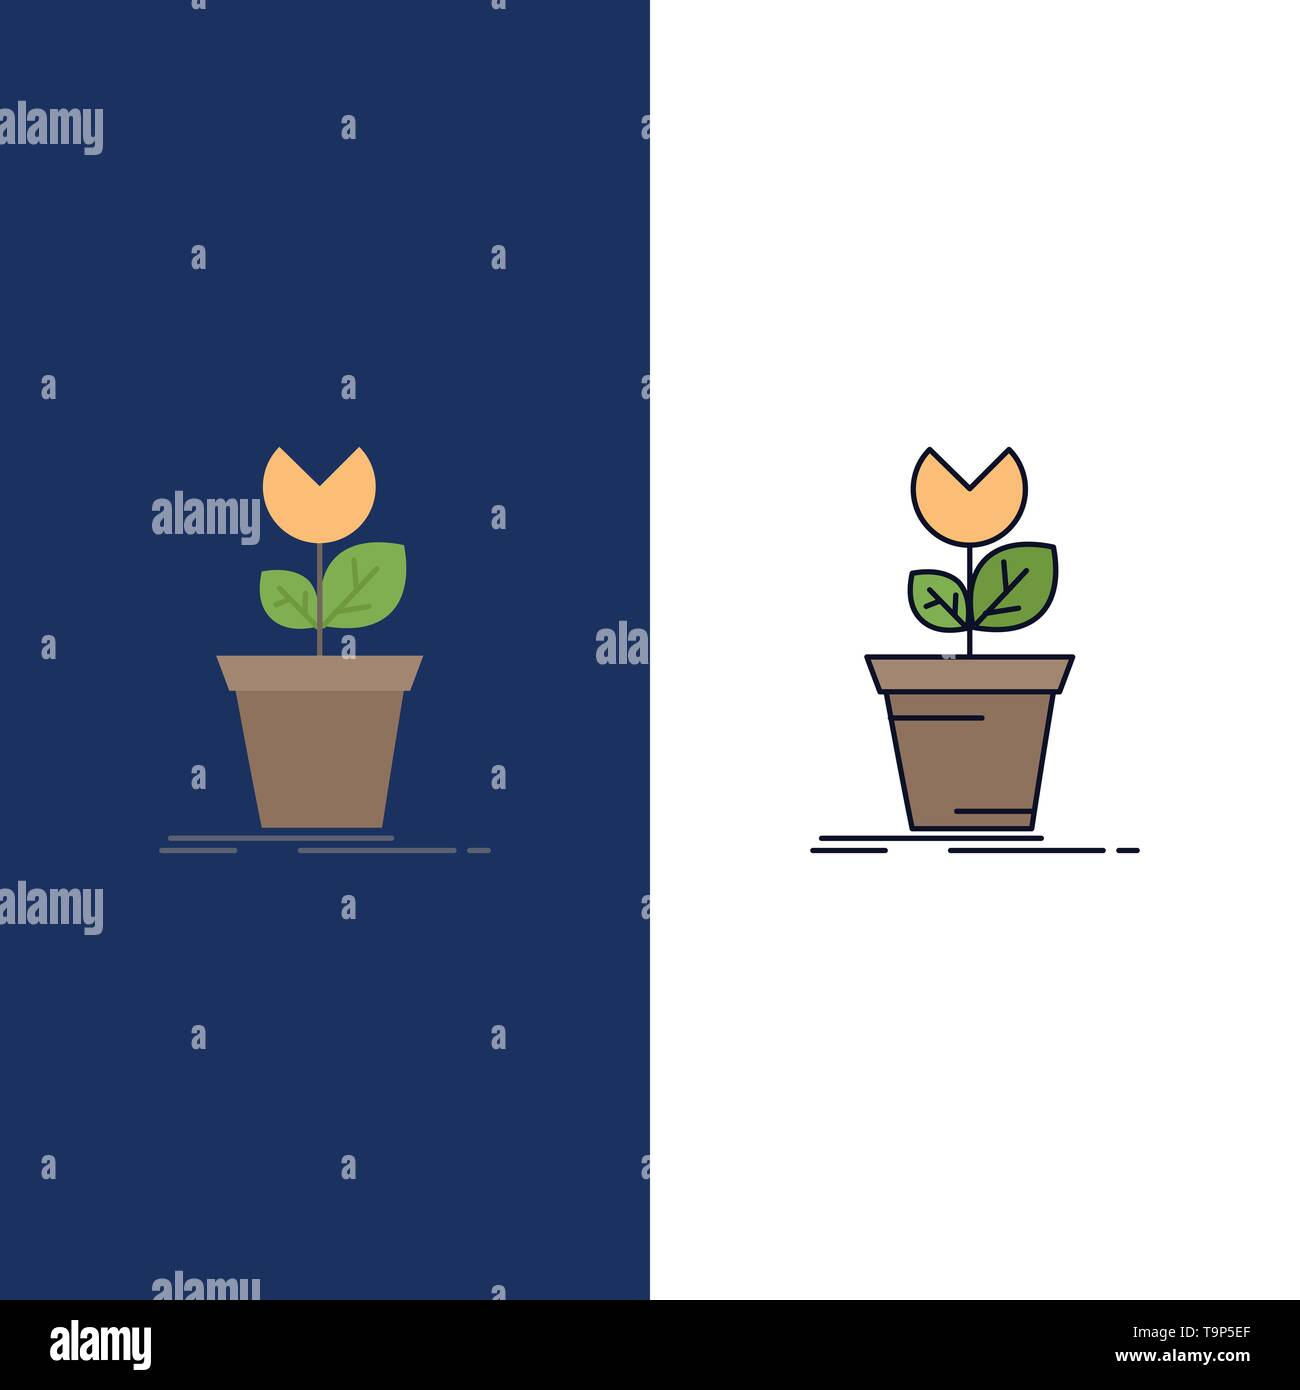 adventure, game, mario, obstacle, plant Flat Color Icon Vector - Stock Image